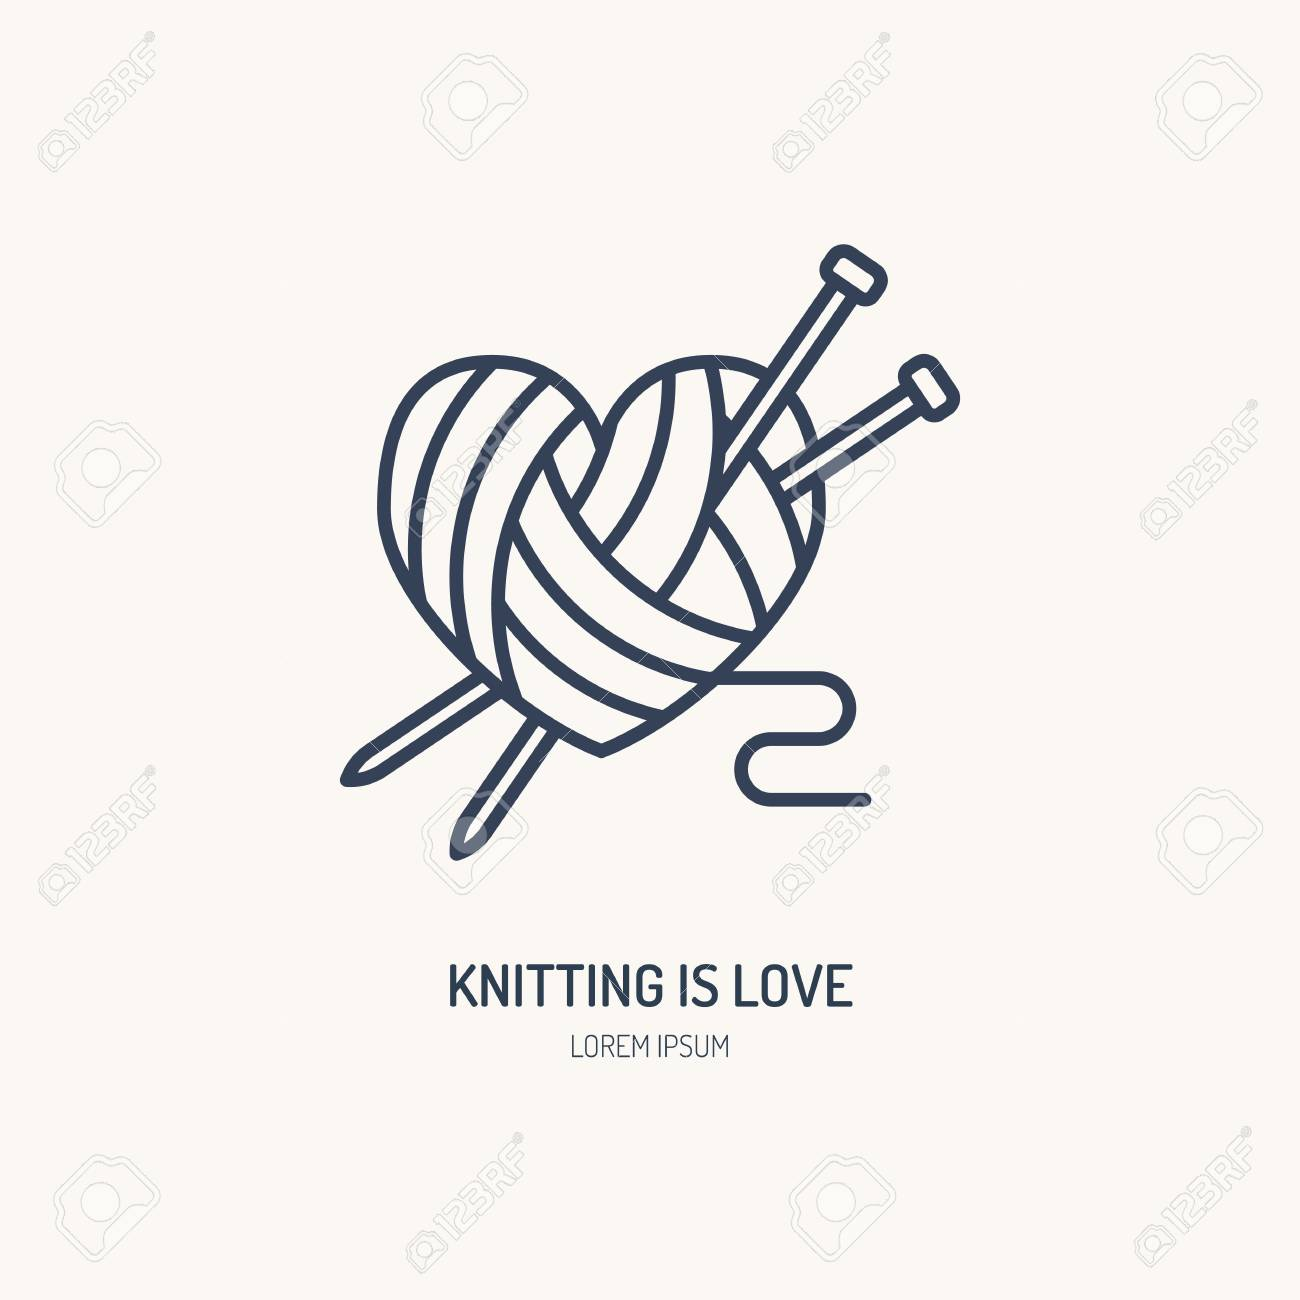 Knitting shop line logo. Yarn store flat sign, illustration of wool skeins with knitting needles. - 73652850